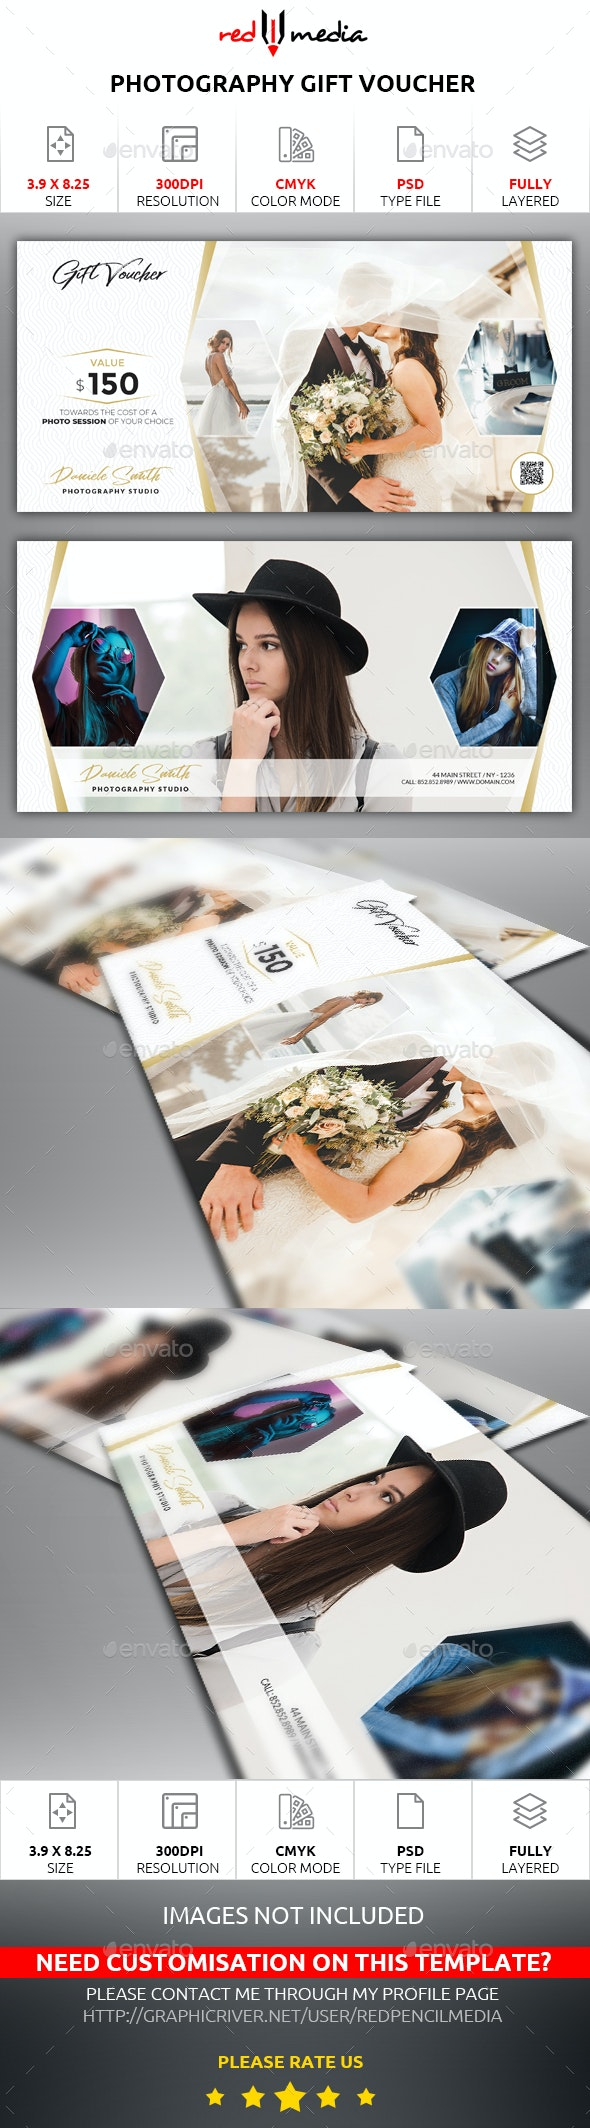 Photography Gift Voucher - Loyalty Cards Cards & Invites